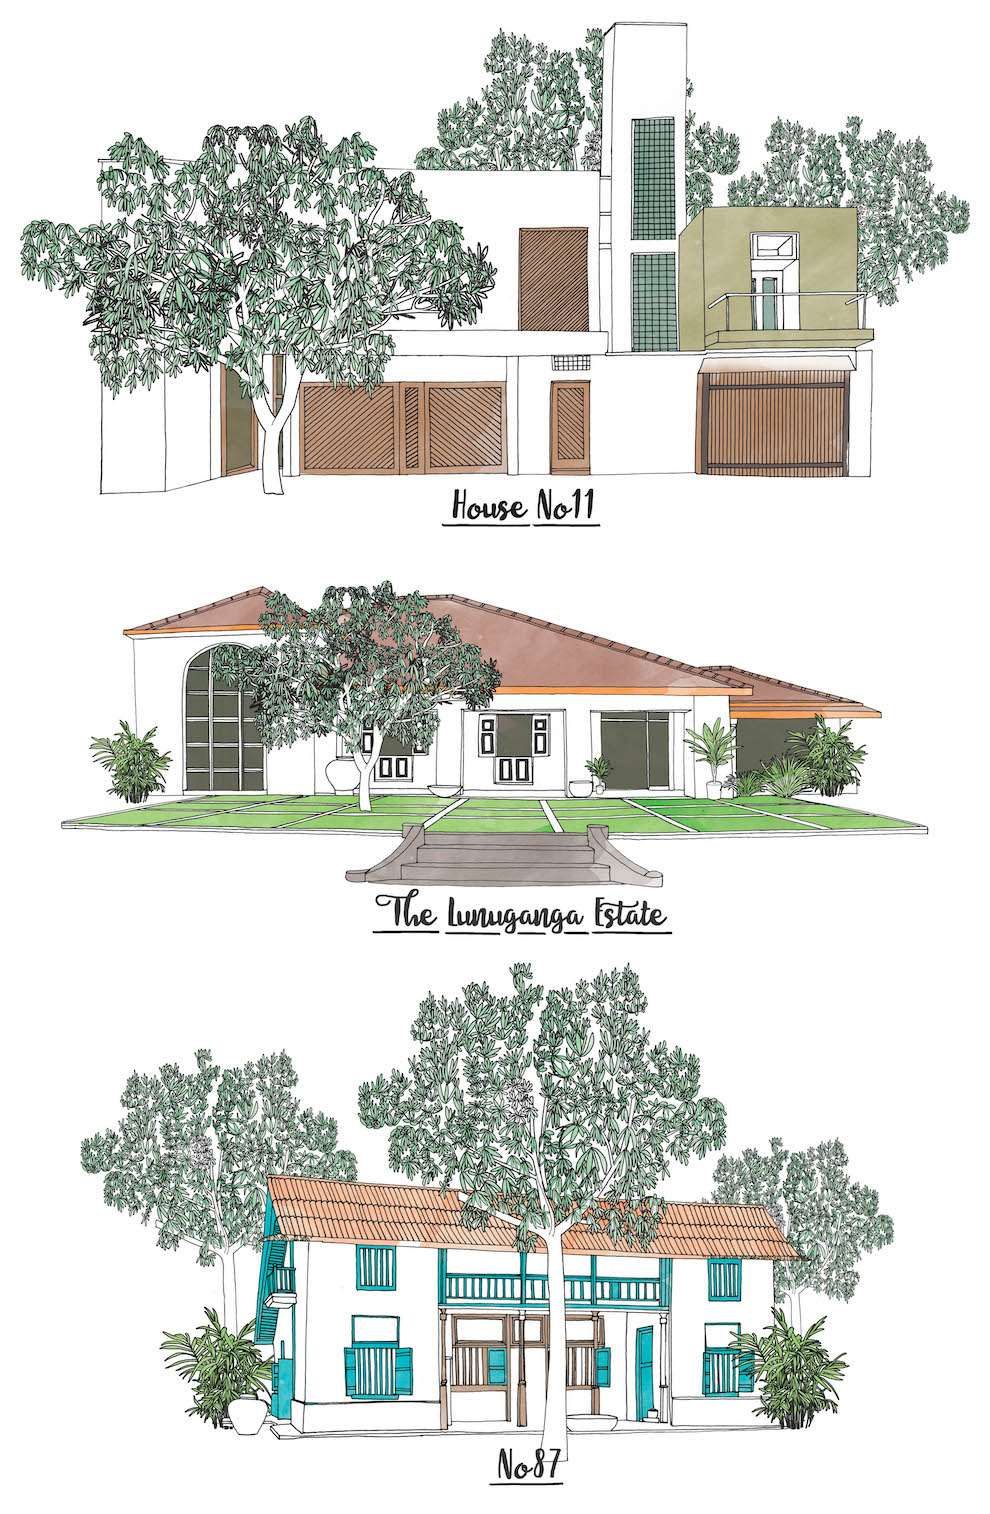 Jitesh Patel, Architectural line illustration of three houses